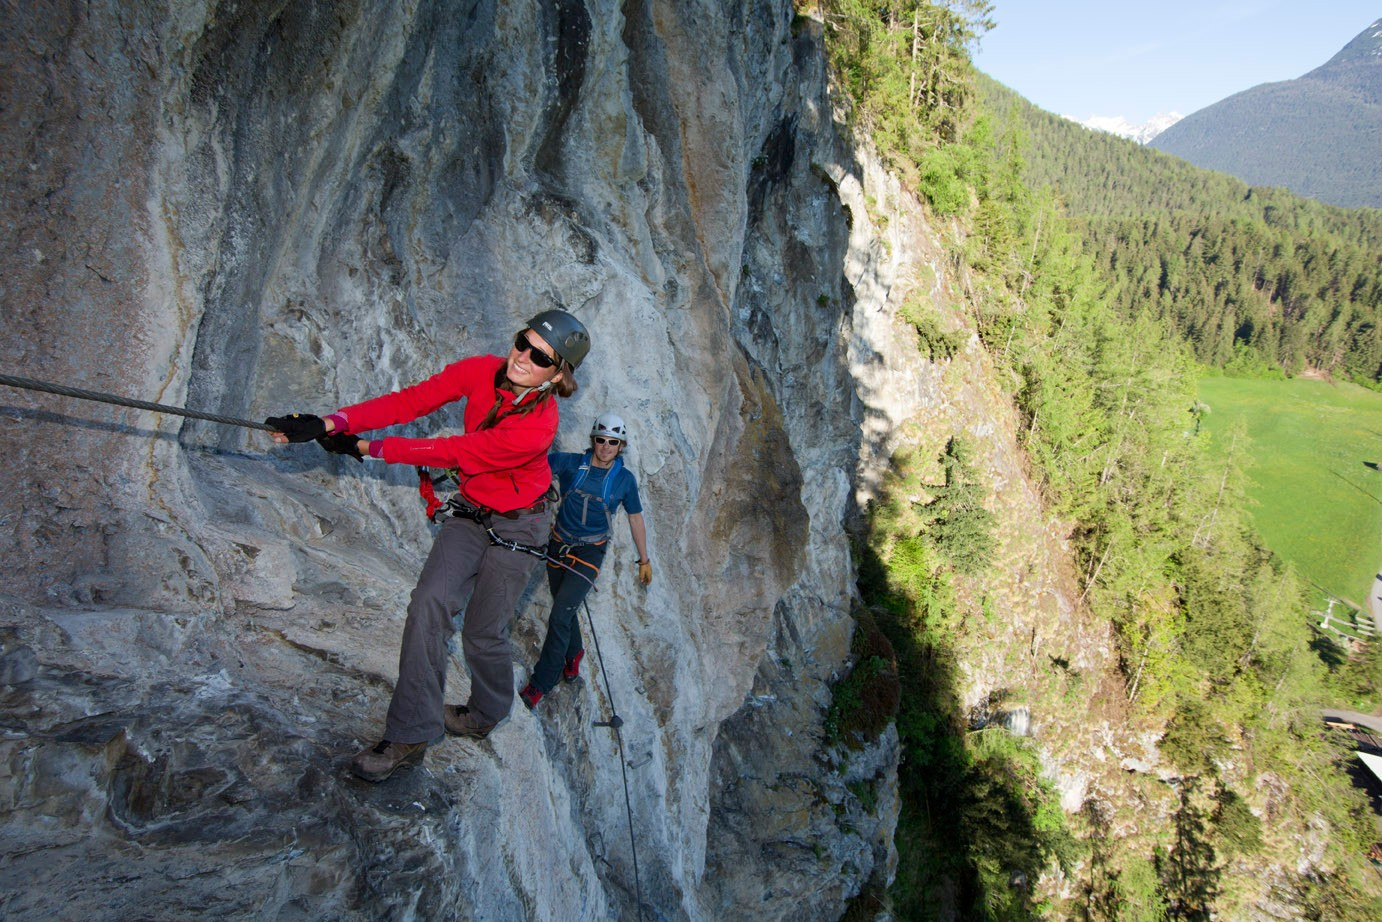 It Goes Up In Three Section At The Steinwand Via Ferrata